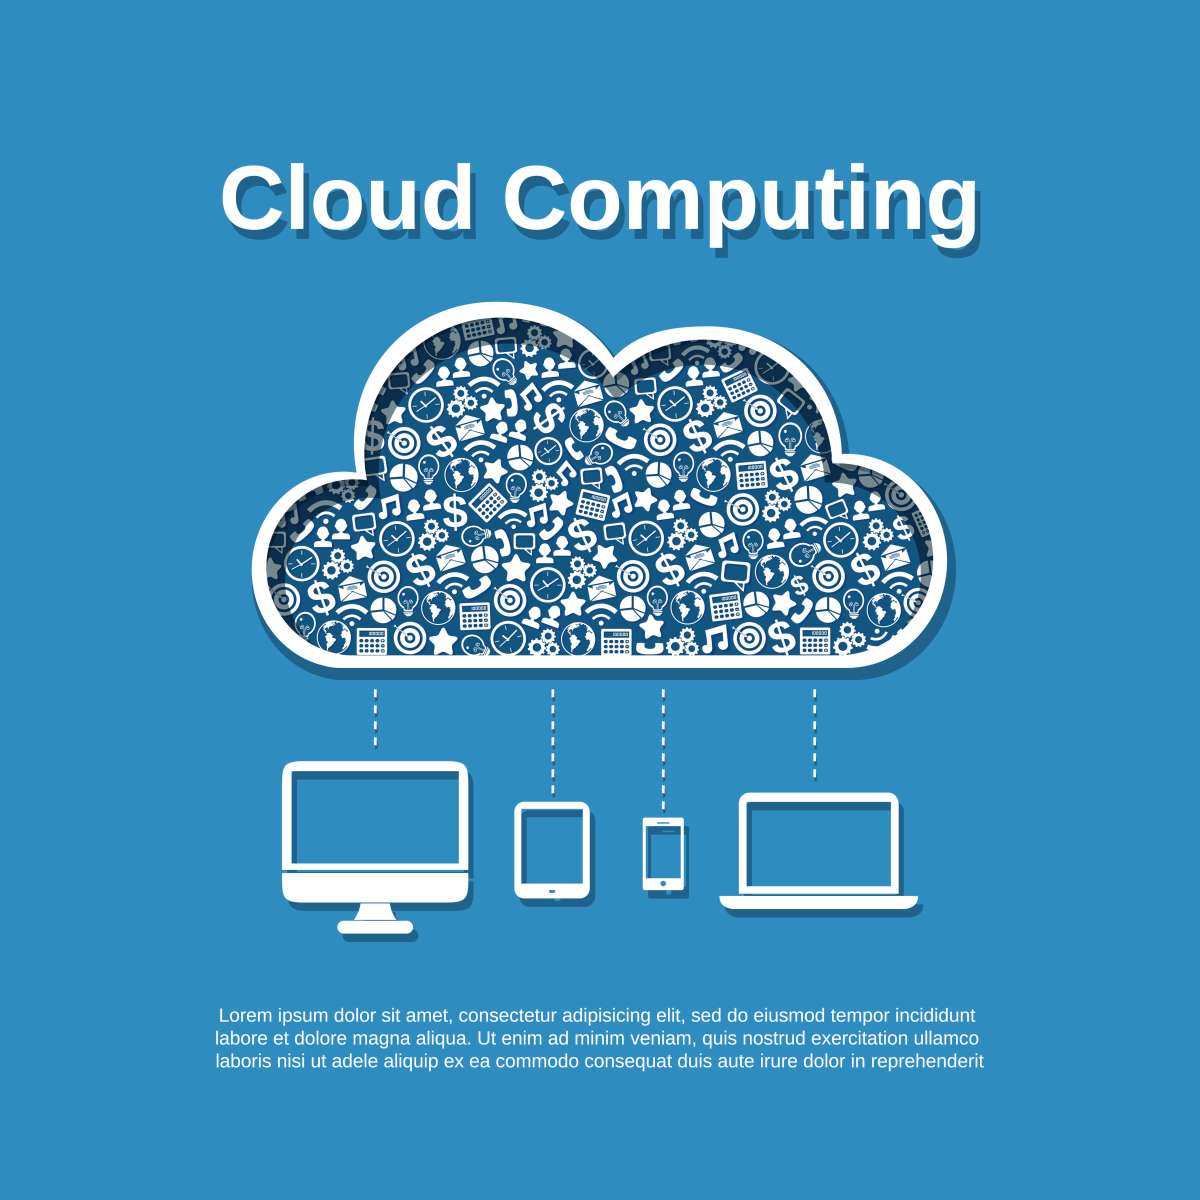 5 Cloud Computing Trends for 2017